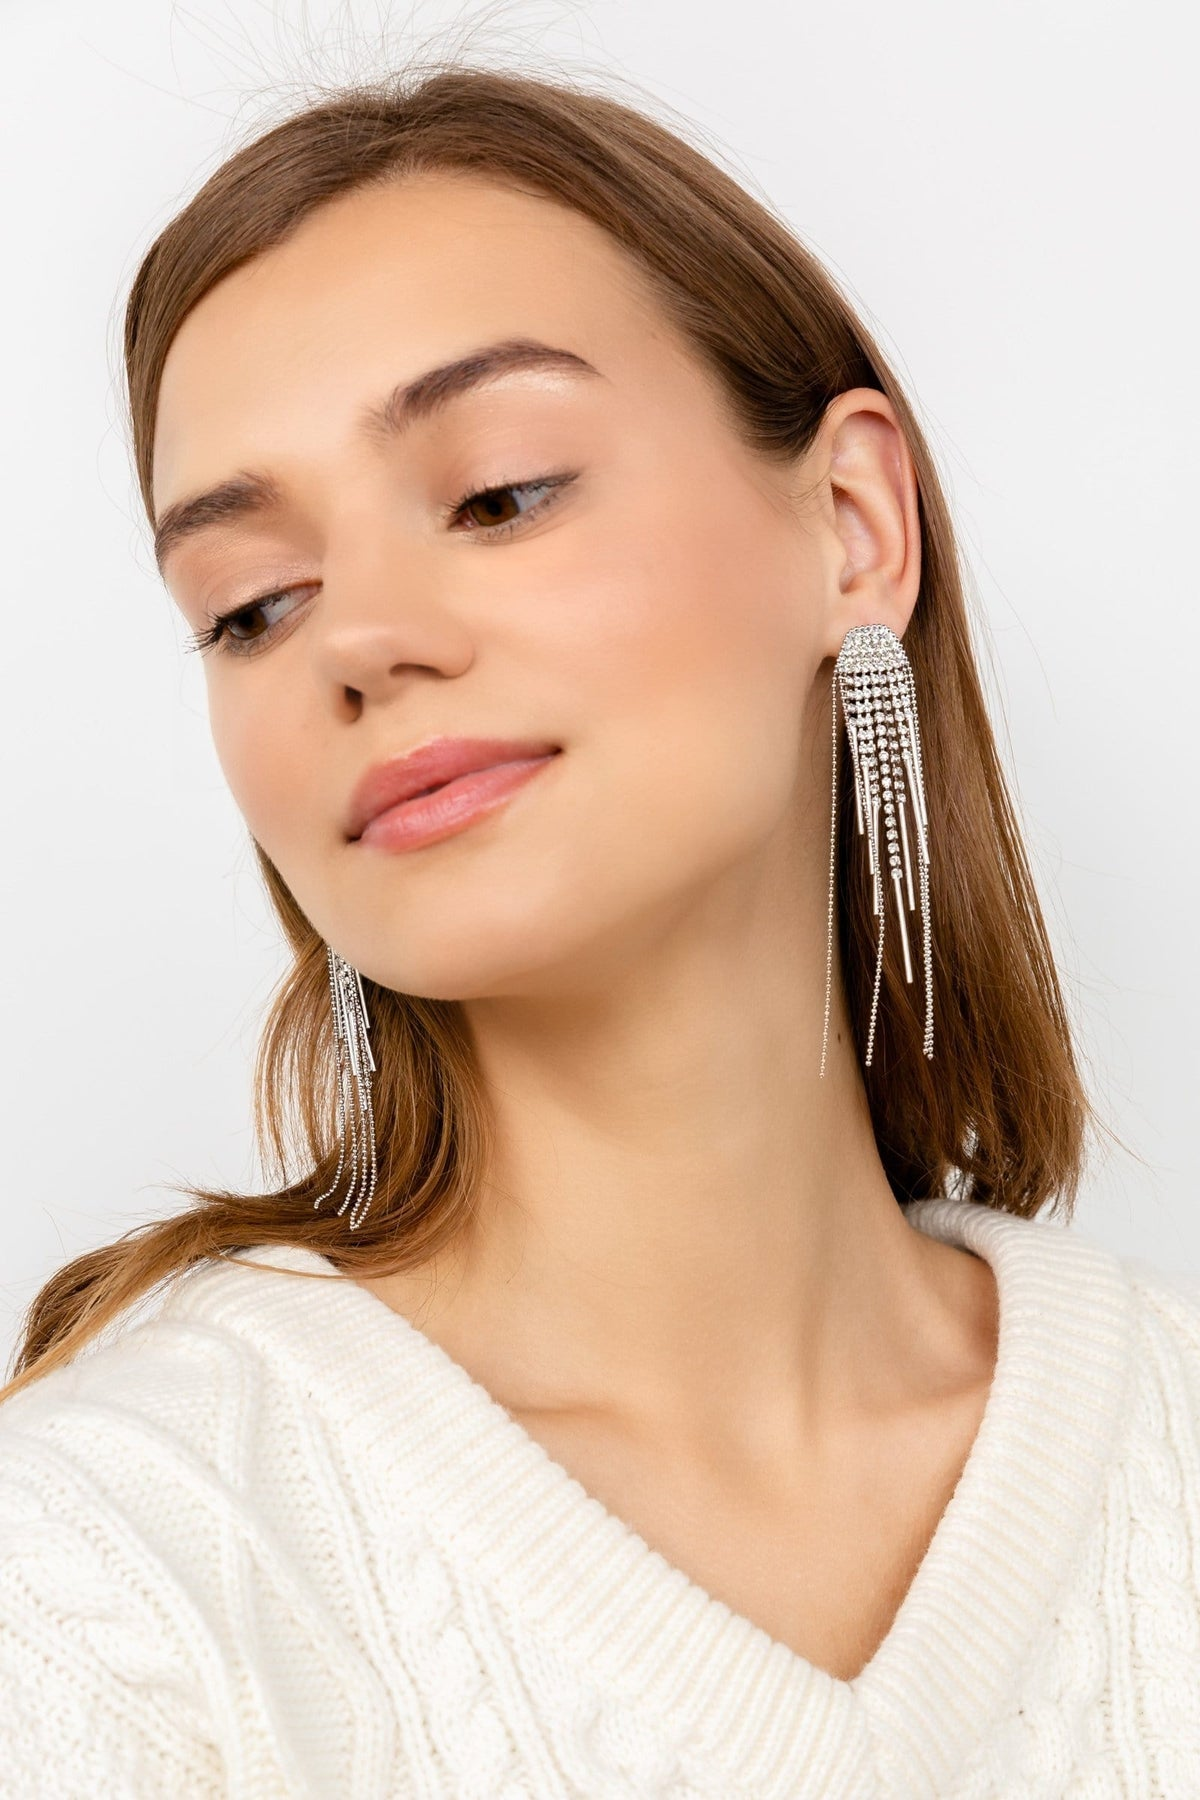 Meteor Shower Earrings